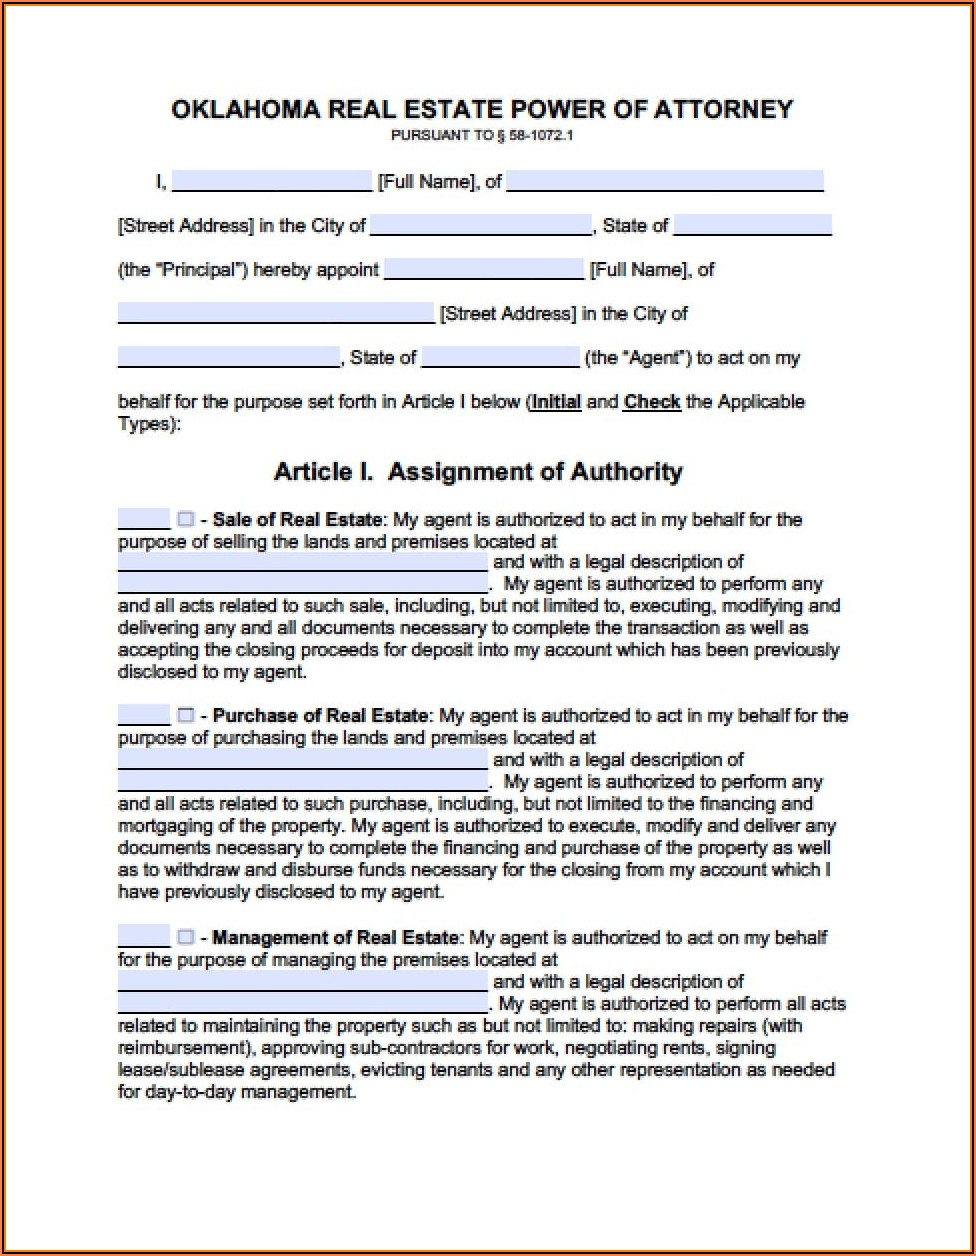 General Power Of Attorney Oklahoma Form